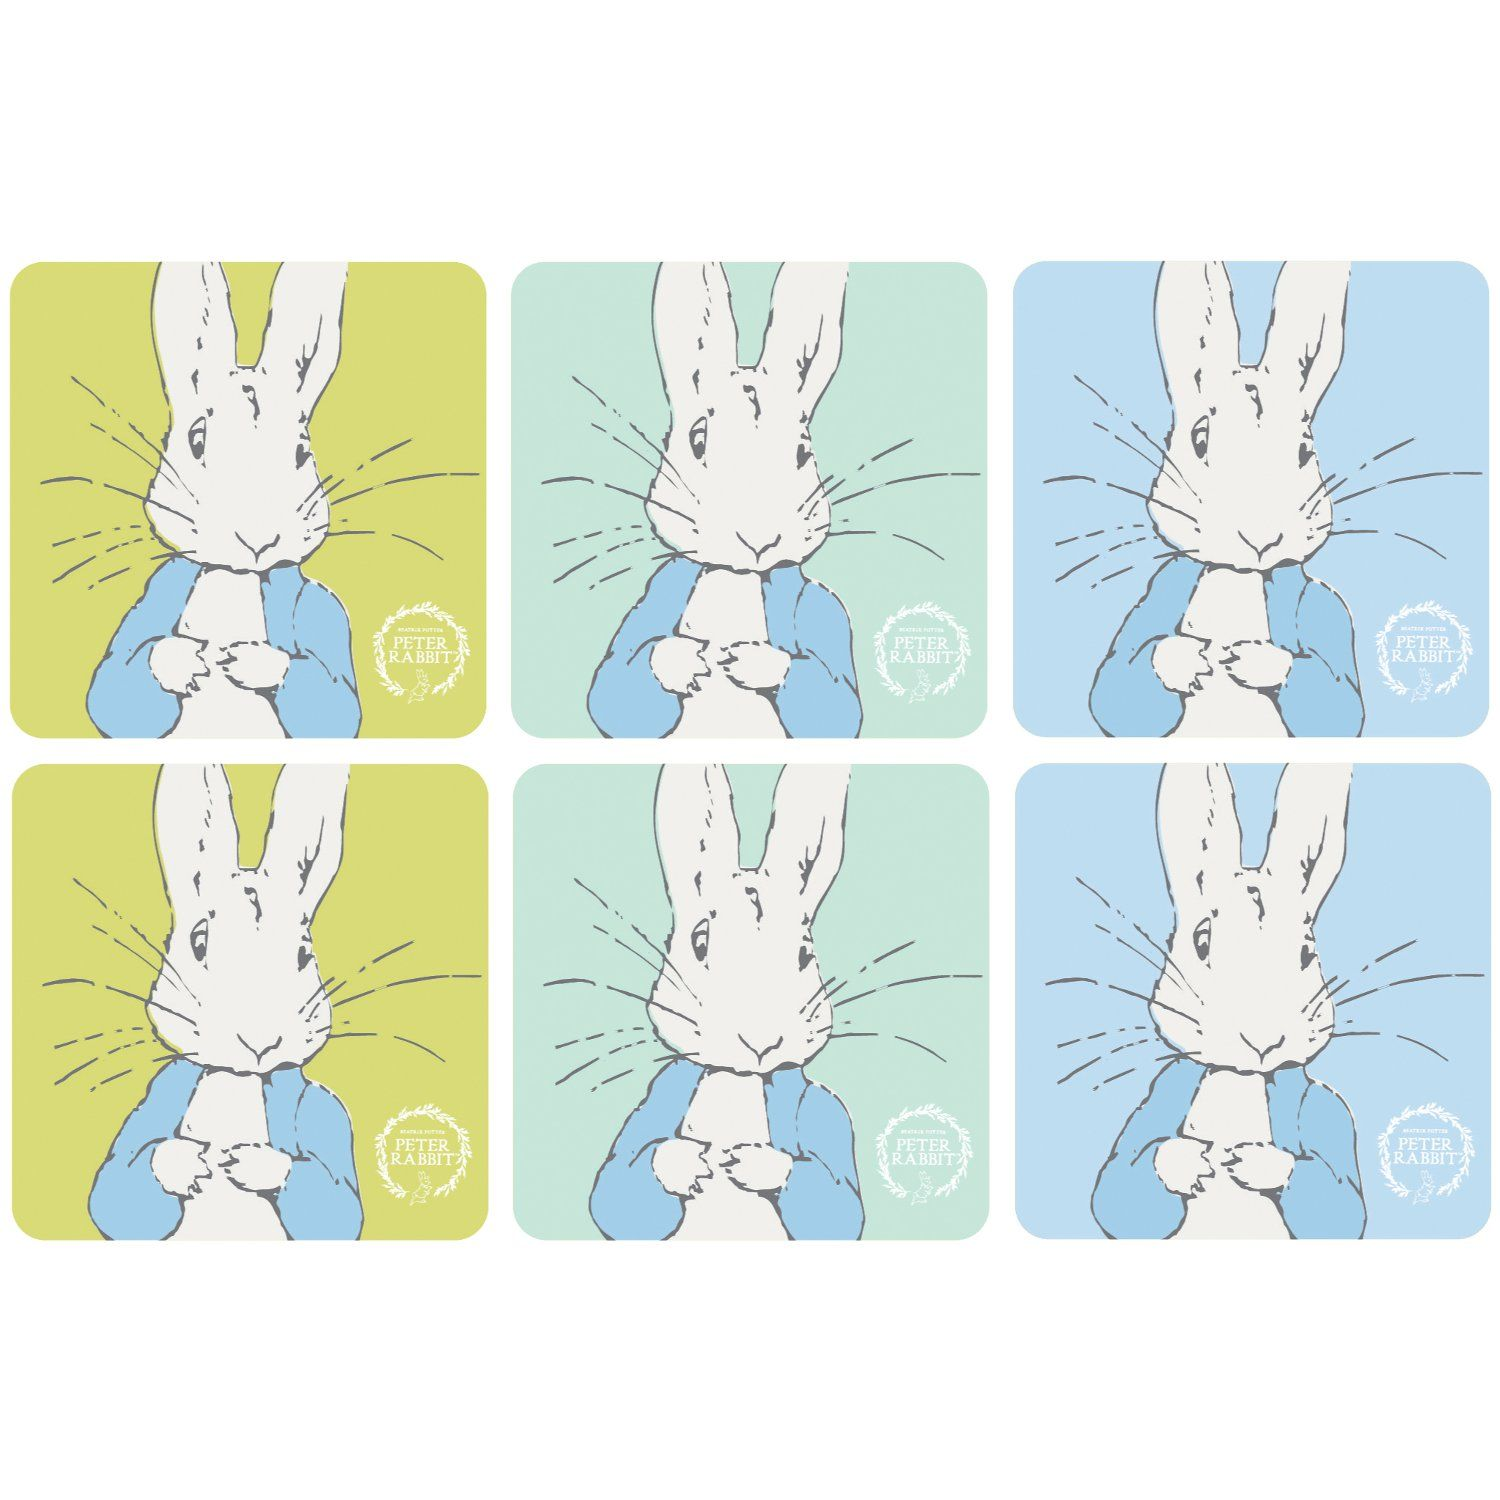 Peter Rabbit Peter Rabbit Contemporary Coasters (Set of 6)